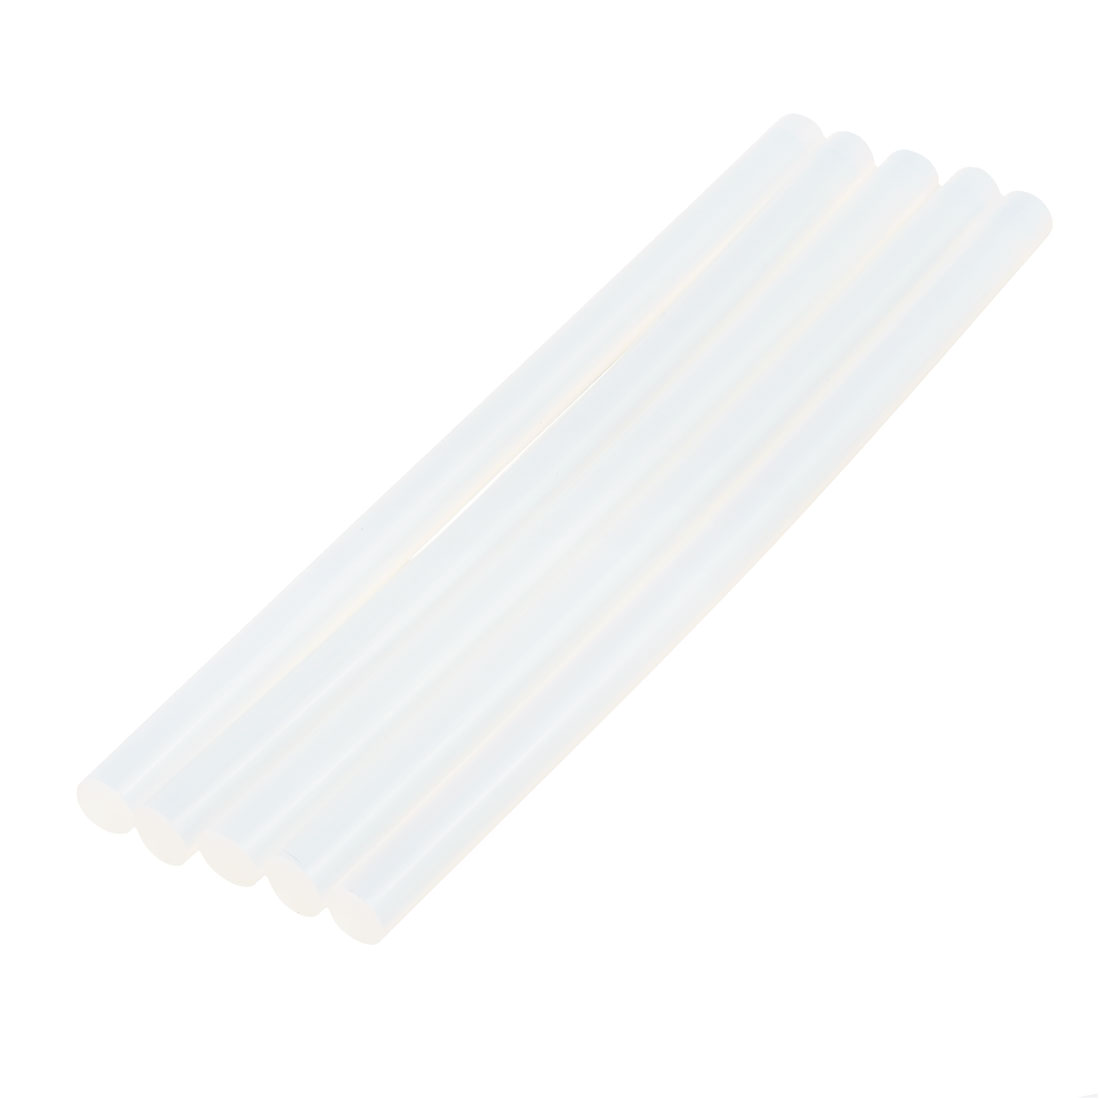 5 Pcs 11mm x 190mm Hot Melt Glue Adhesive Stick Clear for Electric Tool Heating Gun